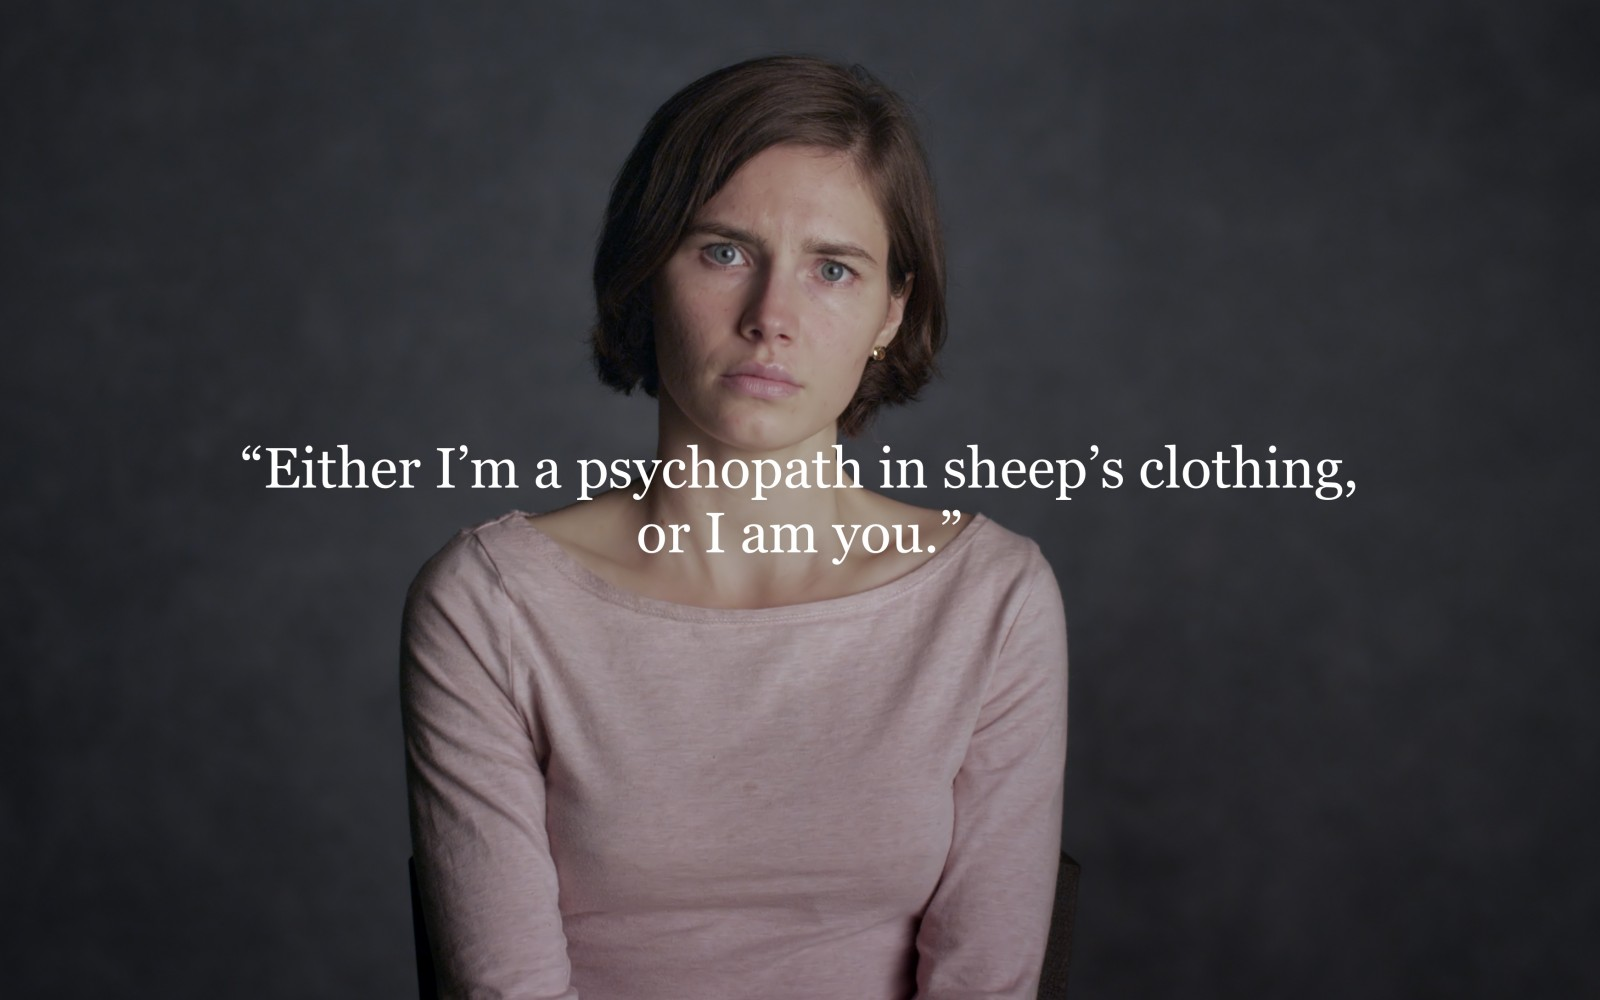 22 Shocking Quotes From The Amanda Knox Controversy That Will Change Everything You Thought You Knew About Innocence